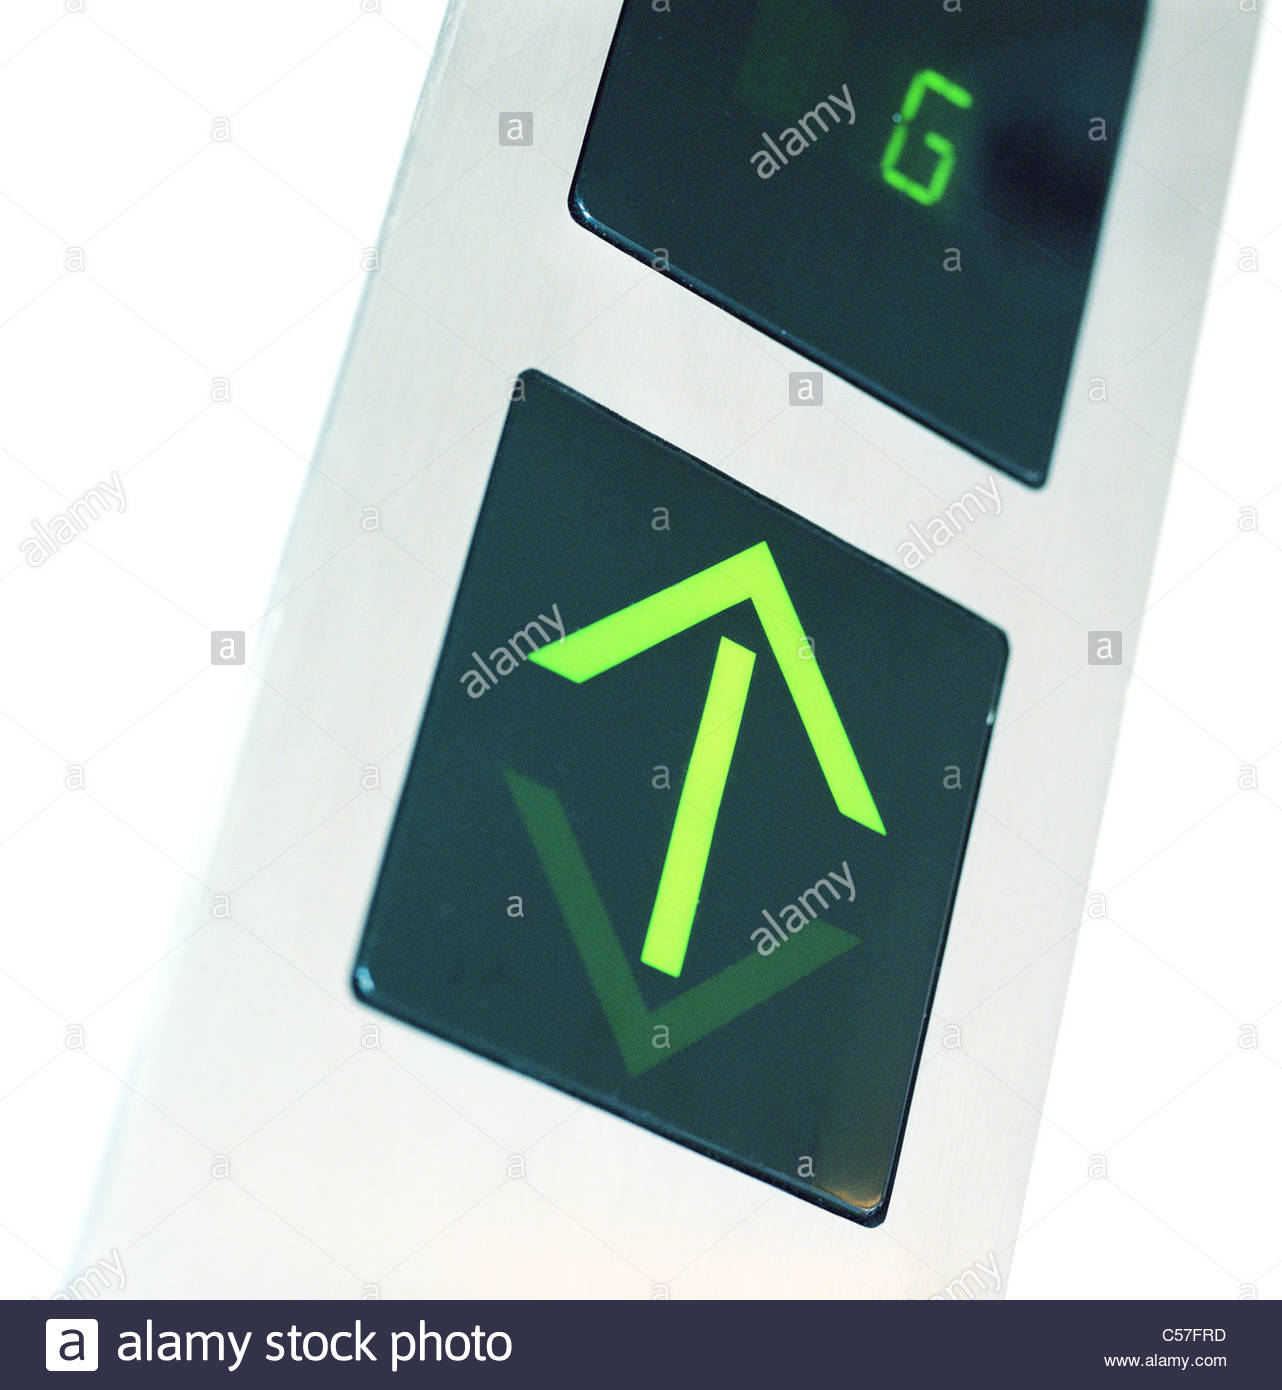 Close up of elevator arrow display - Stock Image